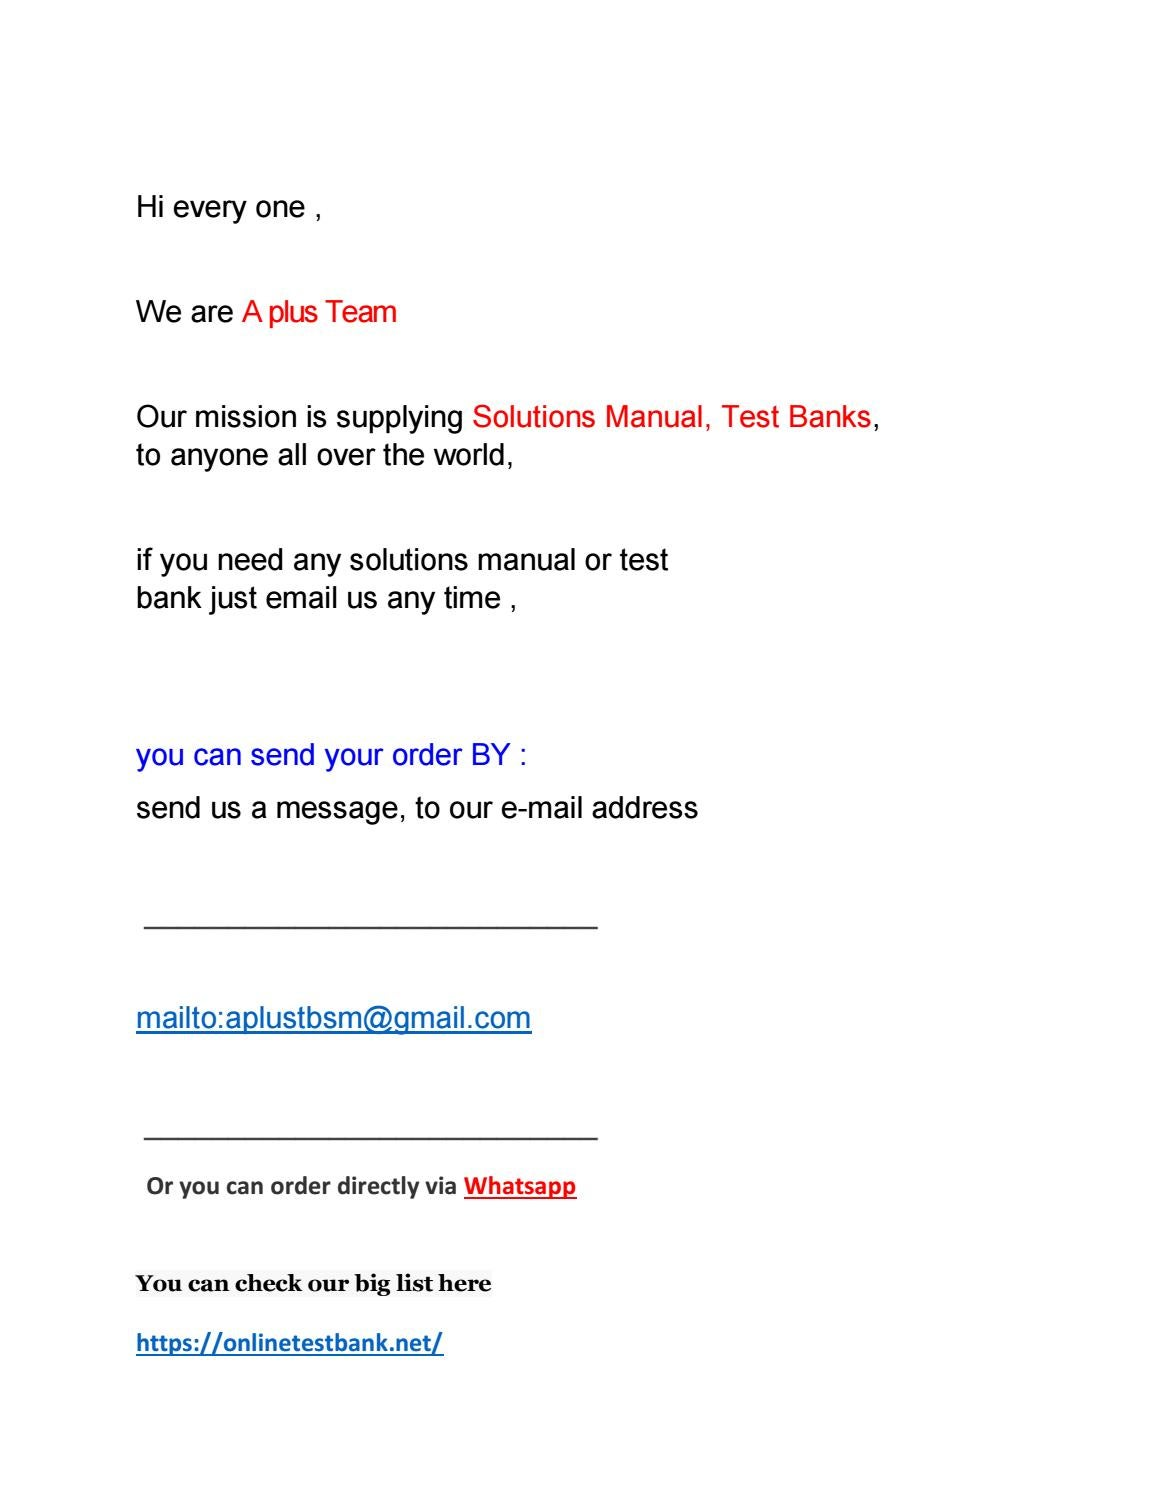 Test Bank And Solution Manual List 5 2019 2020 Pdf By A Plus For Test Bank And Solution Manual Issuu